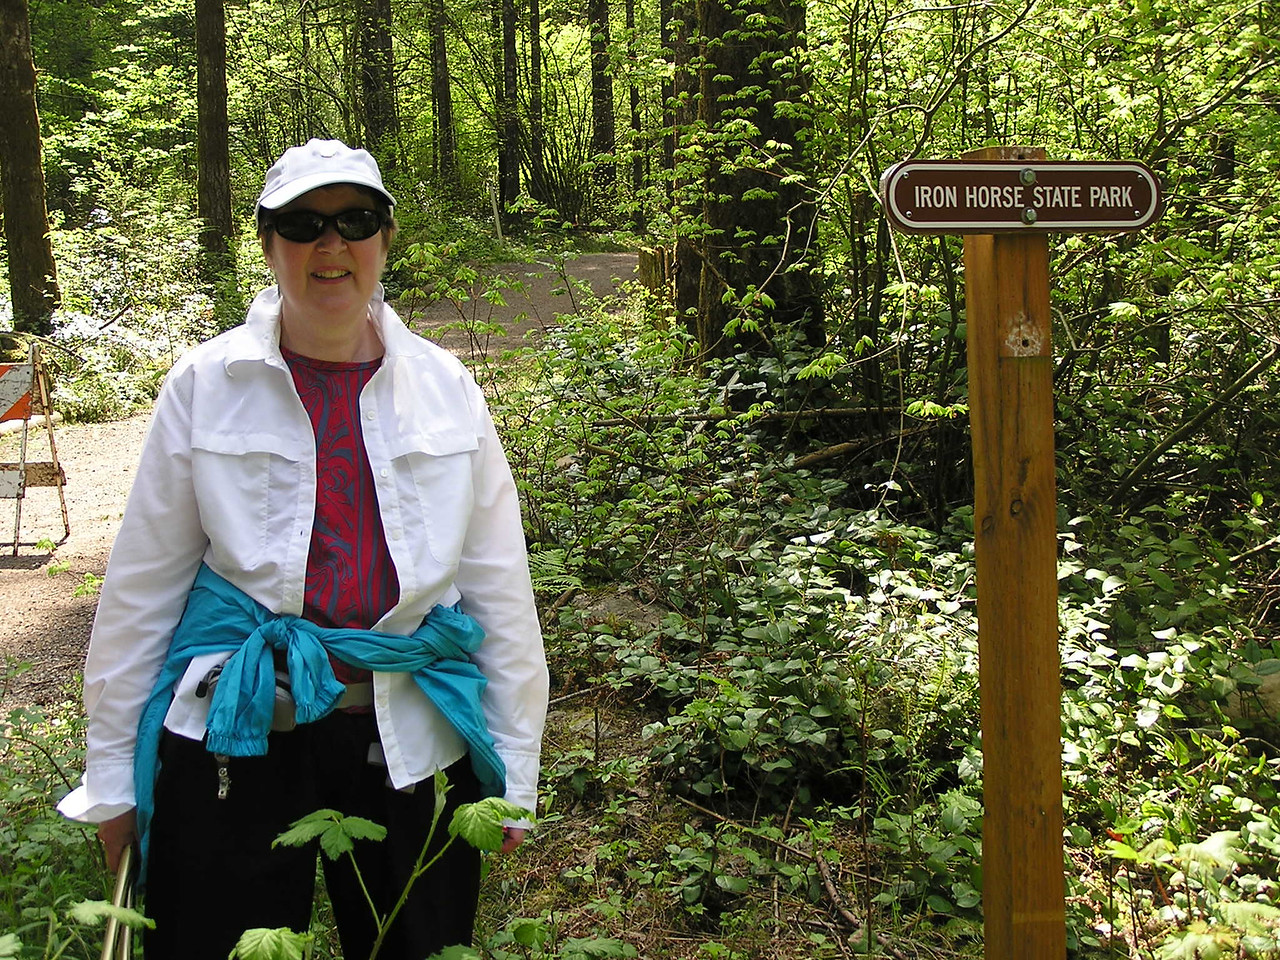 After meandering around the Rattlesnake Lake area for about a mile, we finally hit the trail in Iron Horse State Park.  The state park is an old, abandoned railroad bed.  The old Milwaukee Road right-of-way is an easy grade to walk.  Mary.